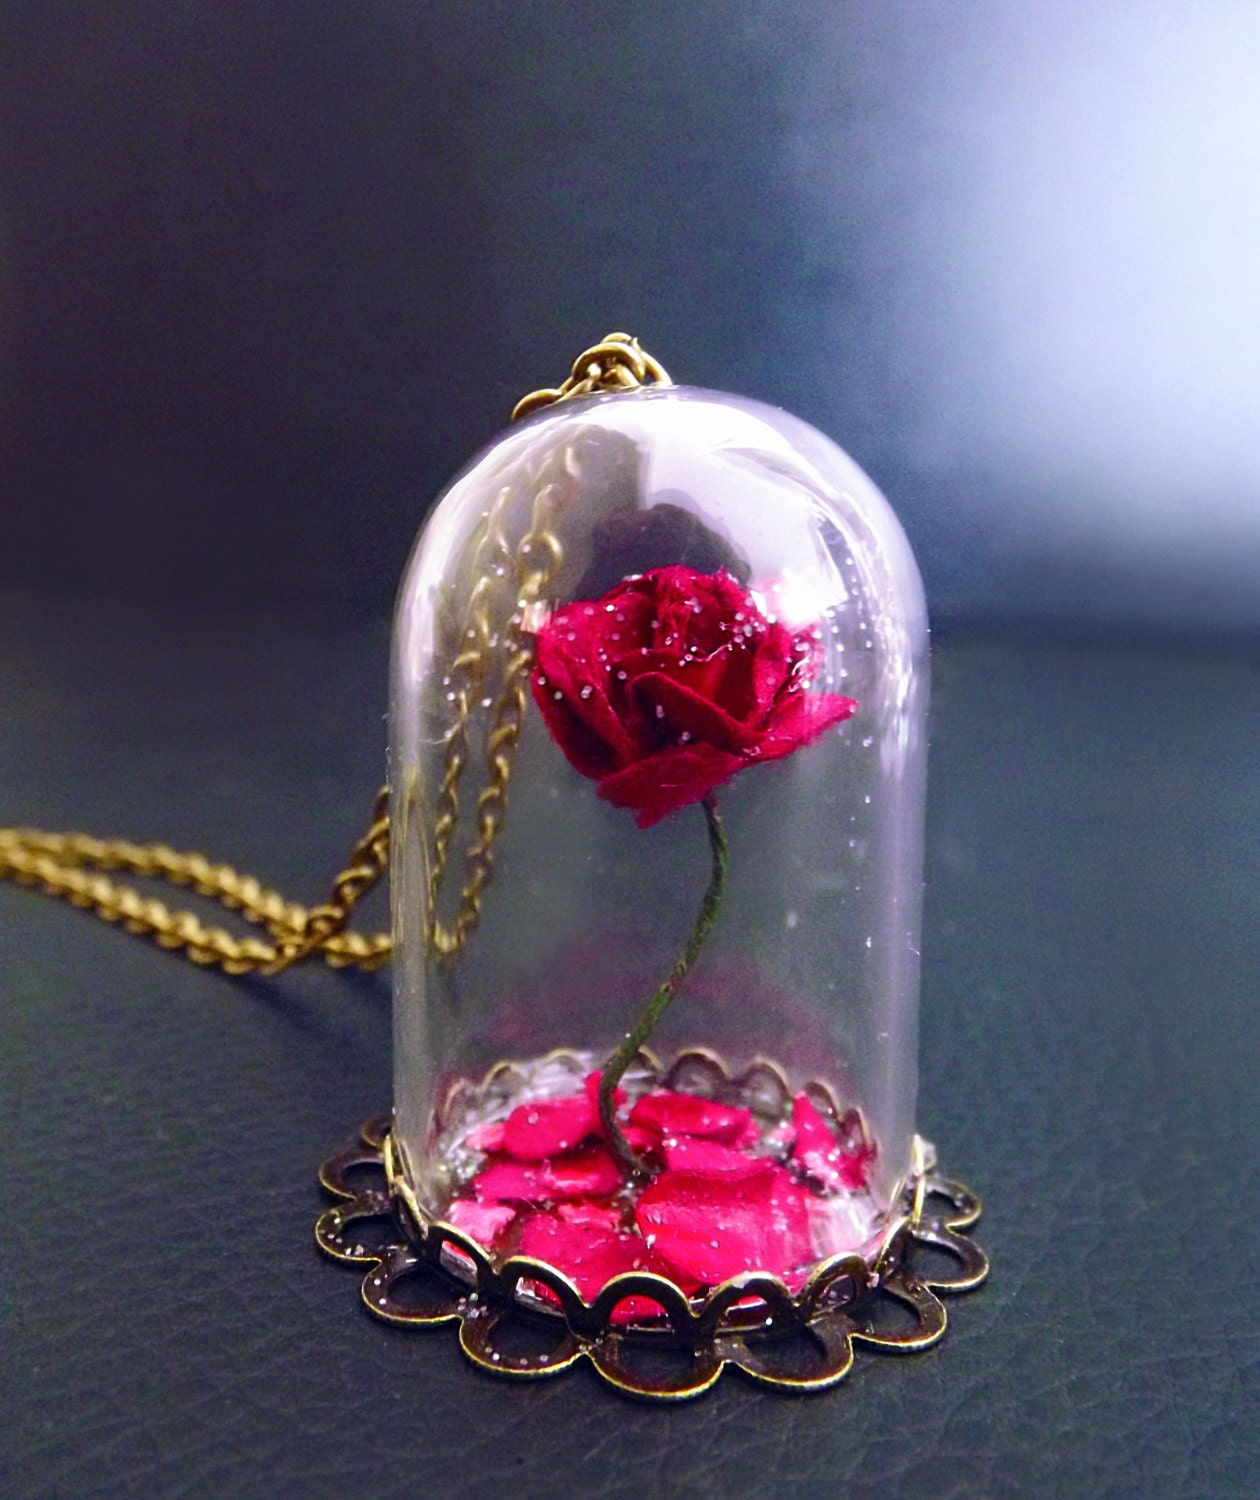 Beauty and the beast rose rose vial necklace snowglobe for Disney beauty and the beast jewelry